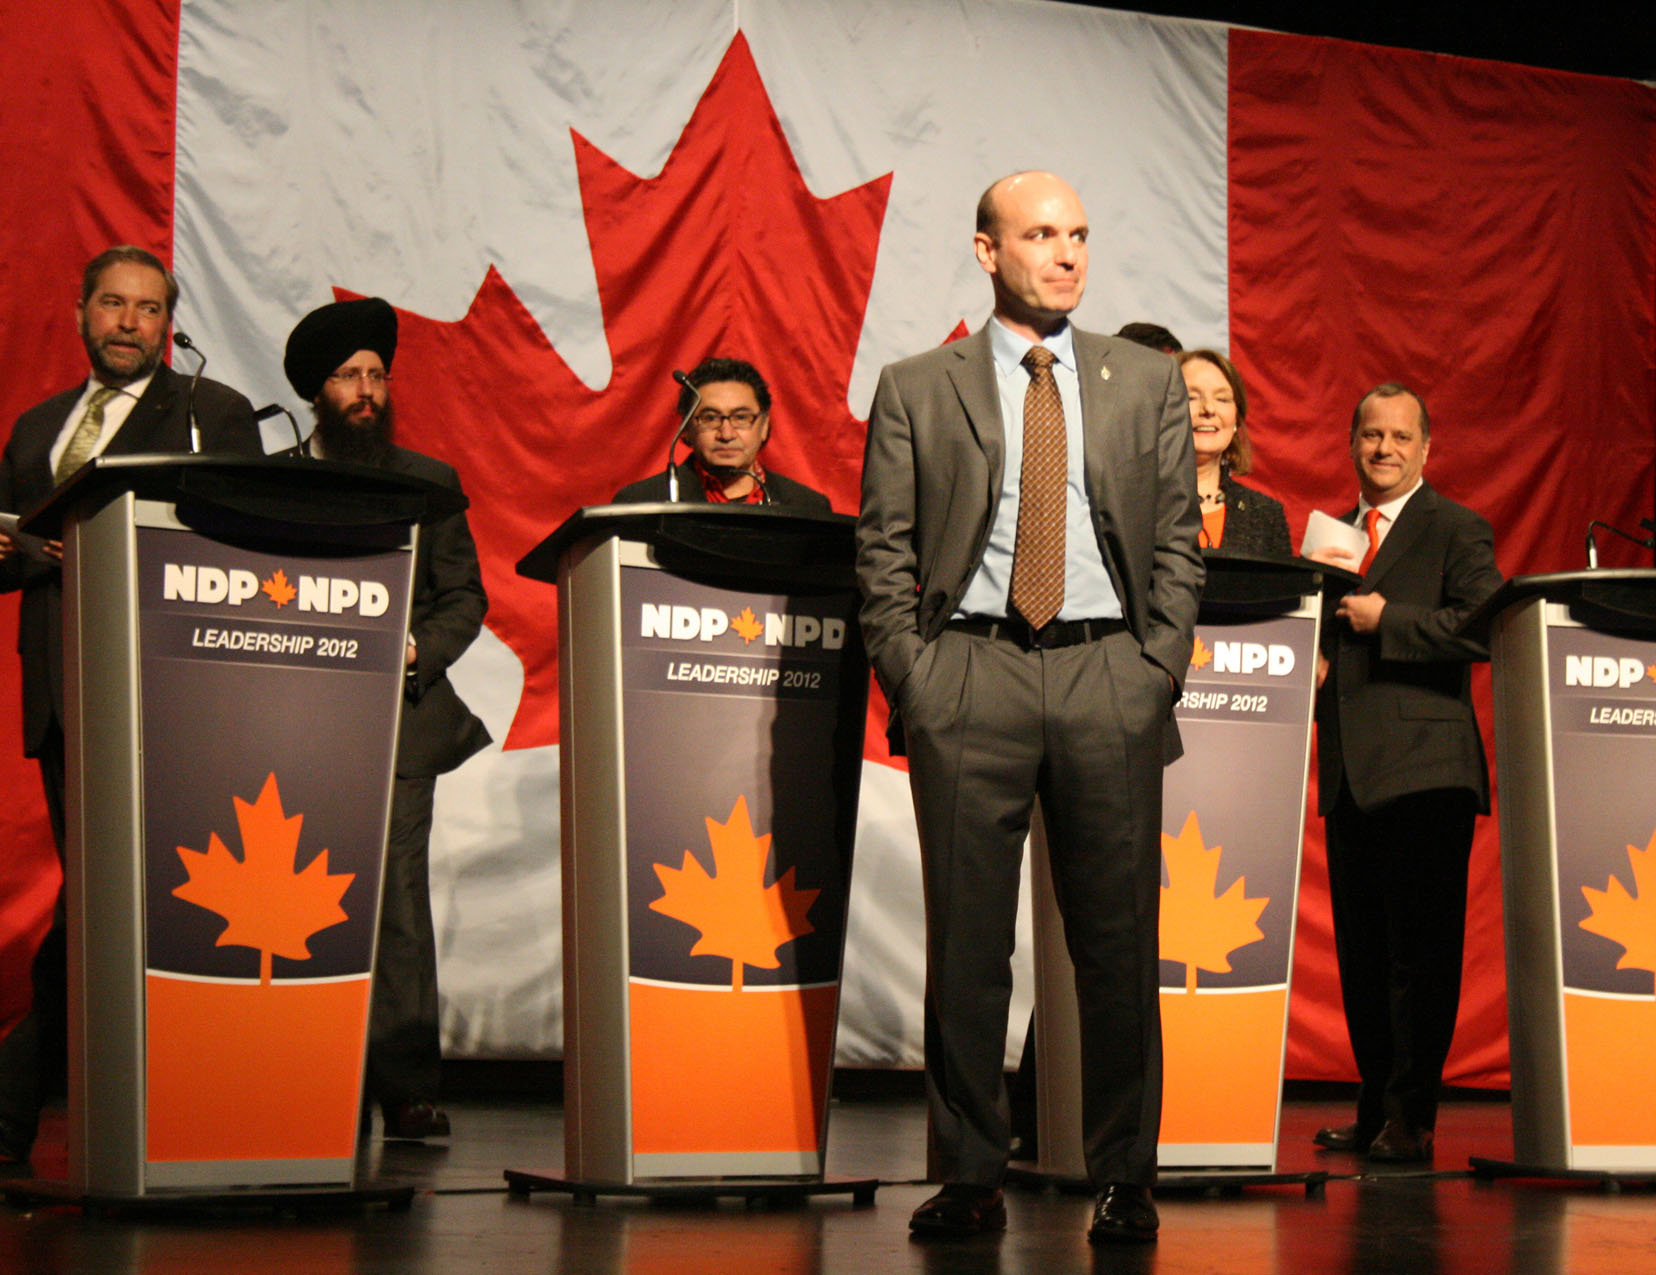 NDP Leadership Debate, Halifax, Nova Scotia